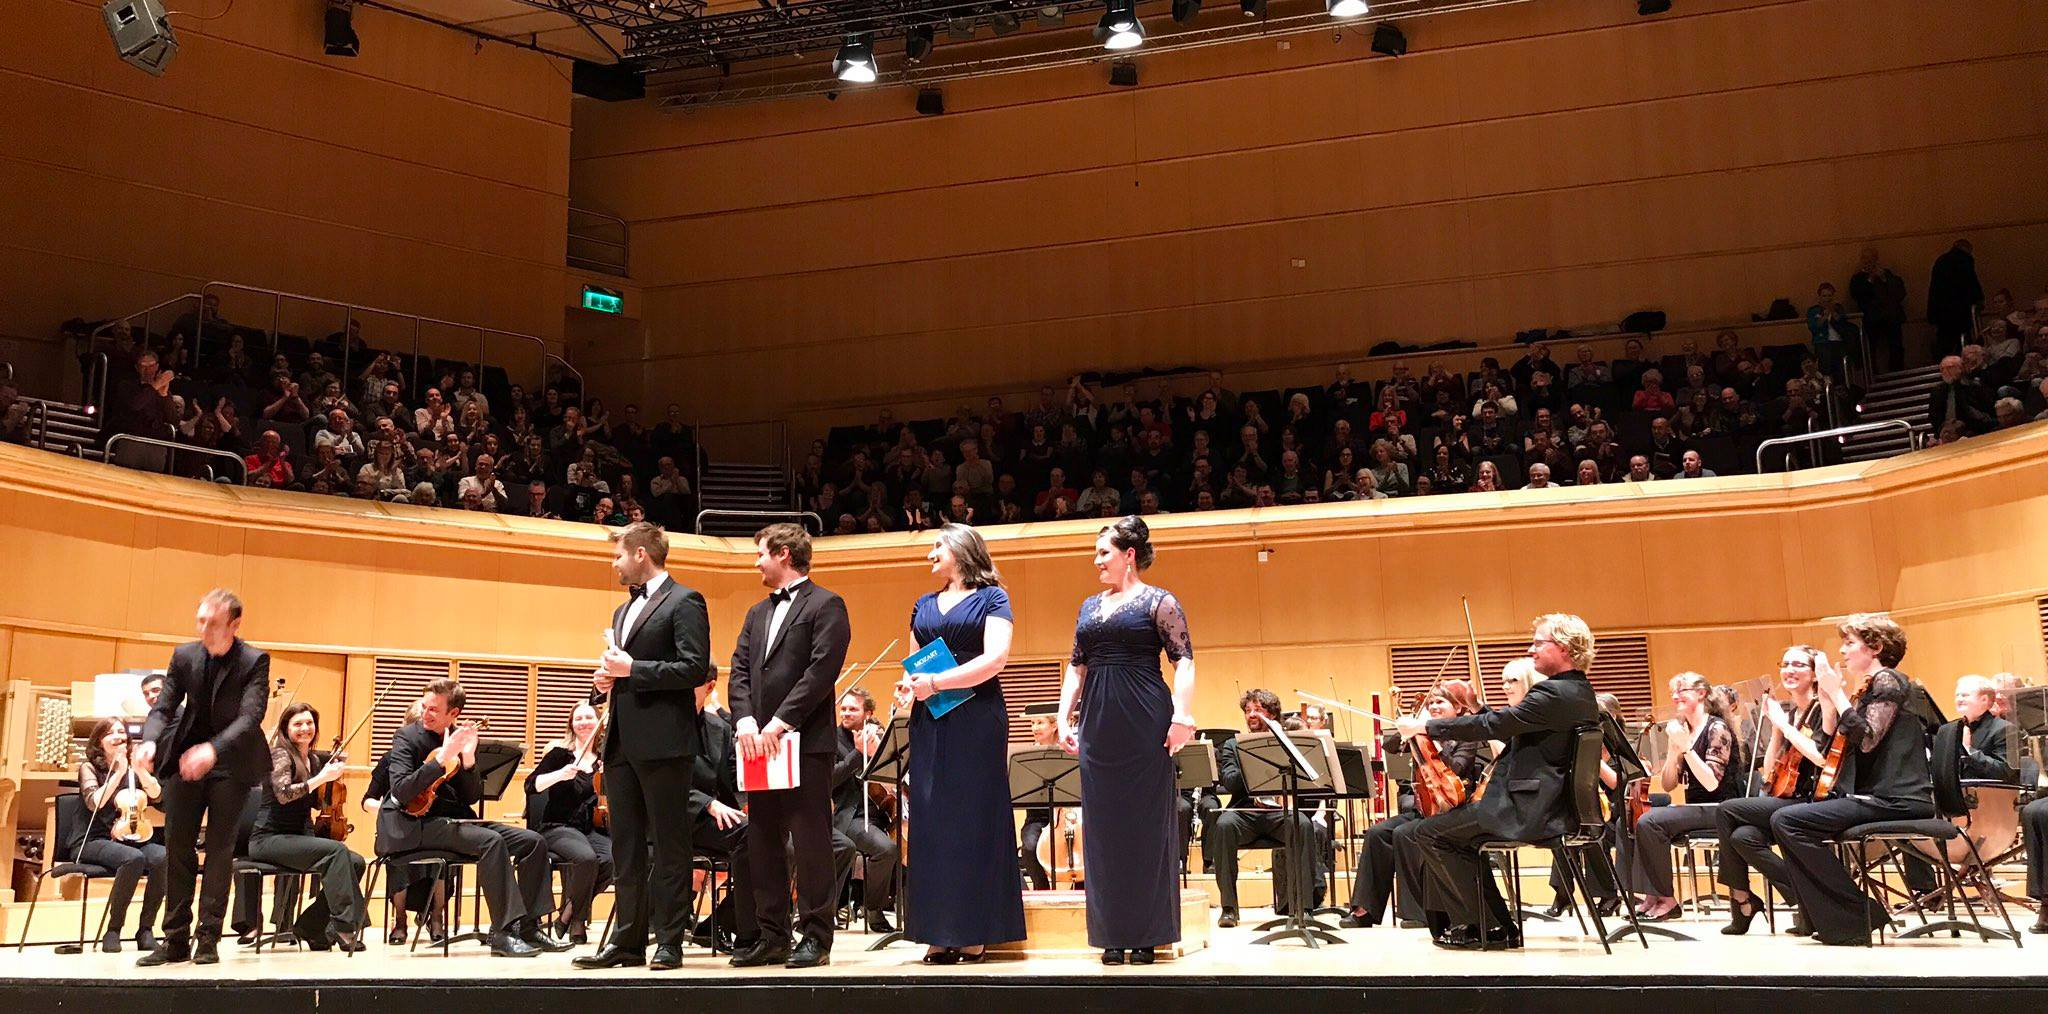 Colour photograph showing soloists on stage with the RSNO during a performance of the Mozart Requiem